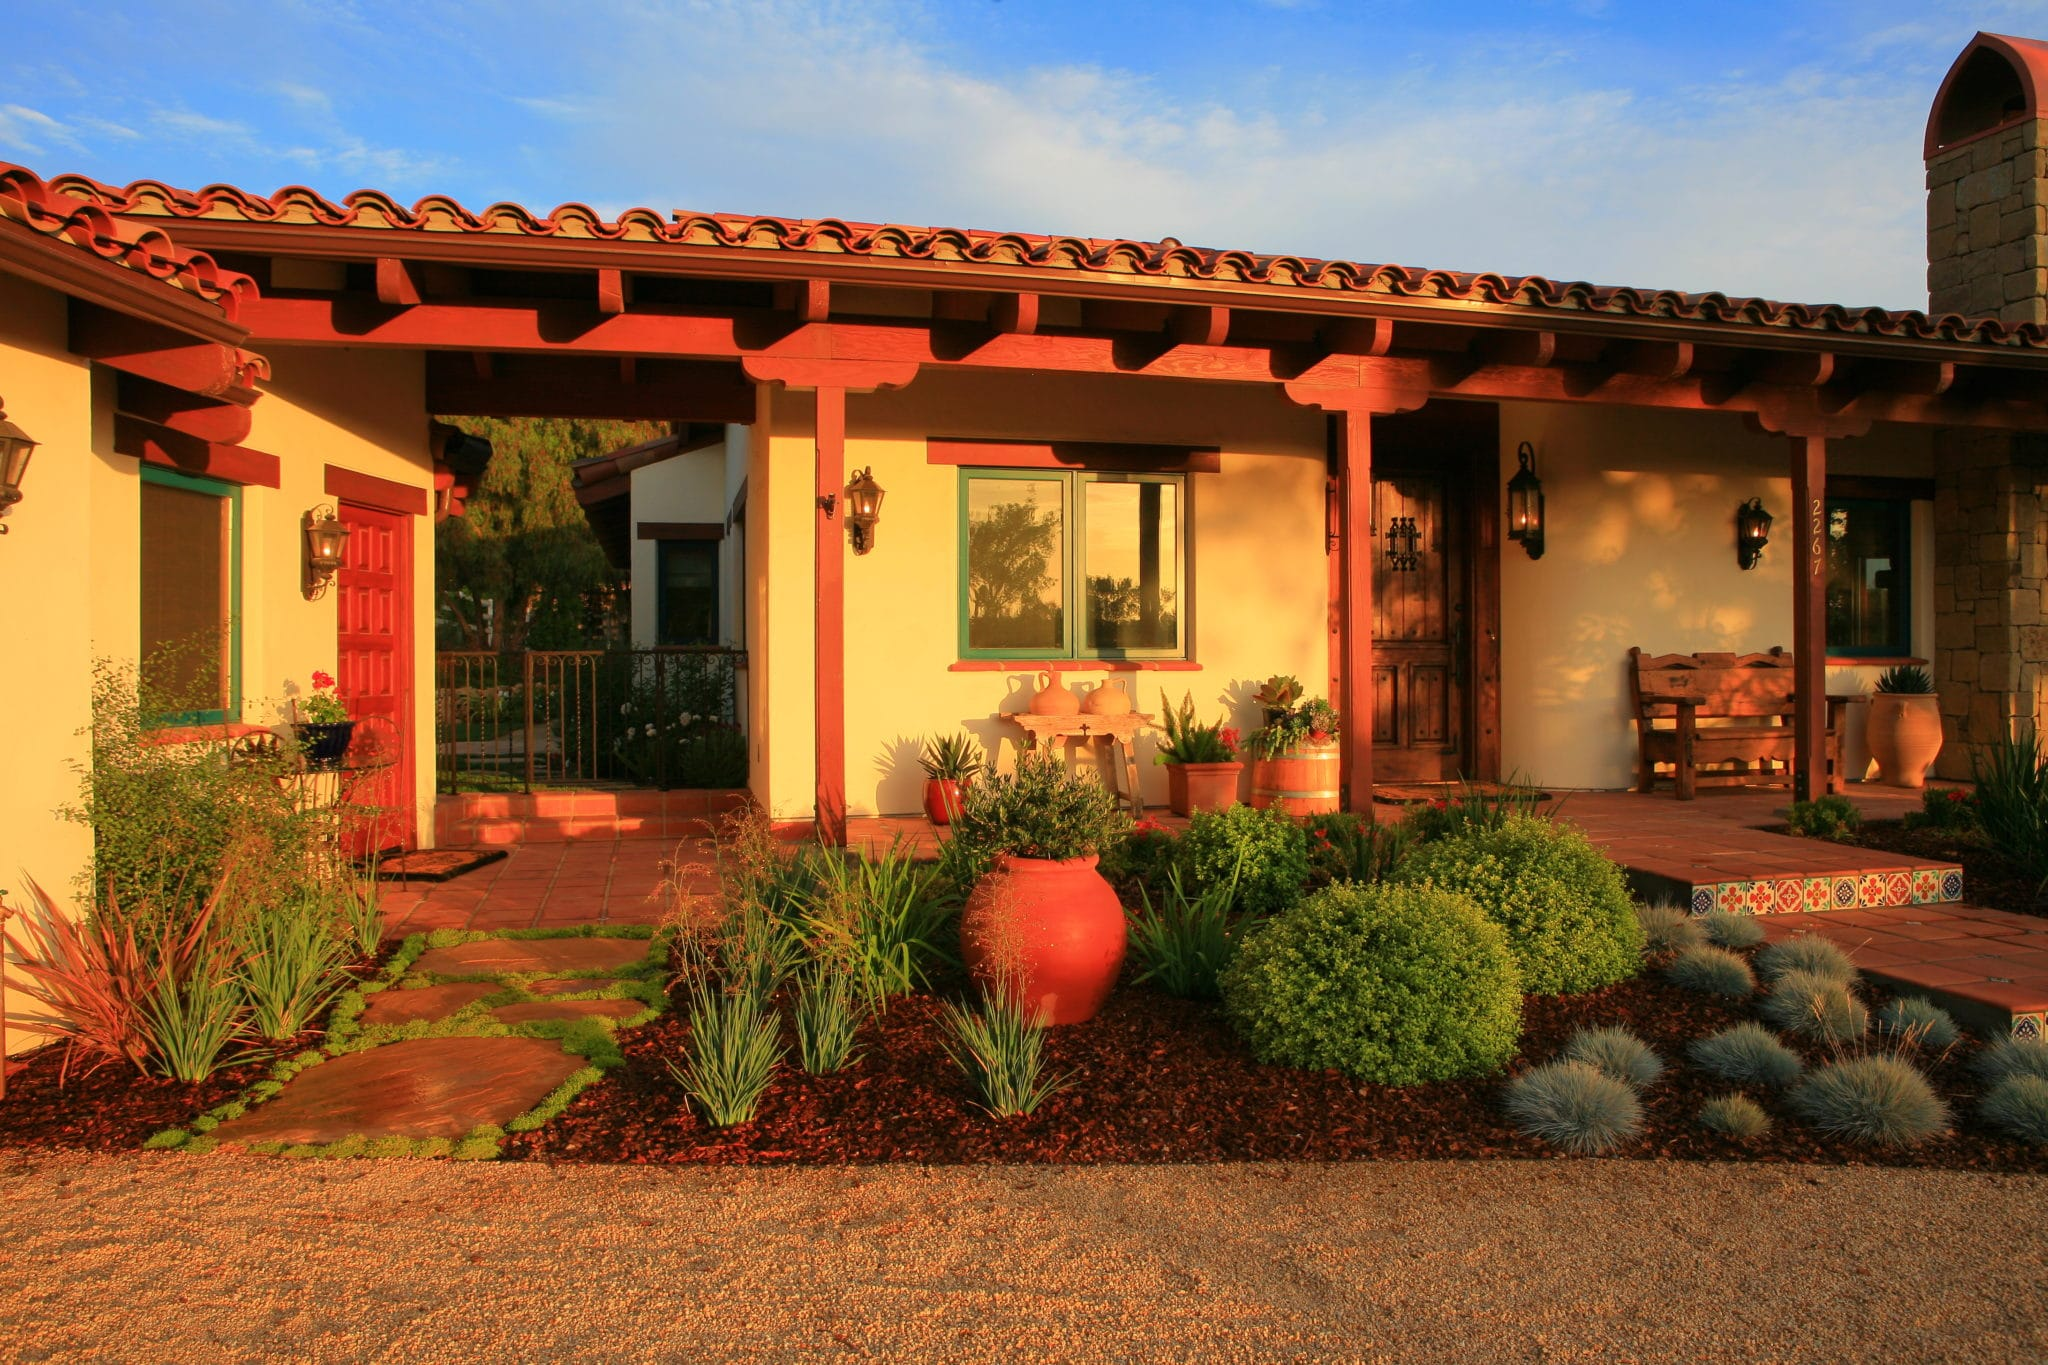 Eco friendly landscape design by lisa cox for hacienda for Spanish hacienda style